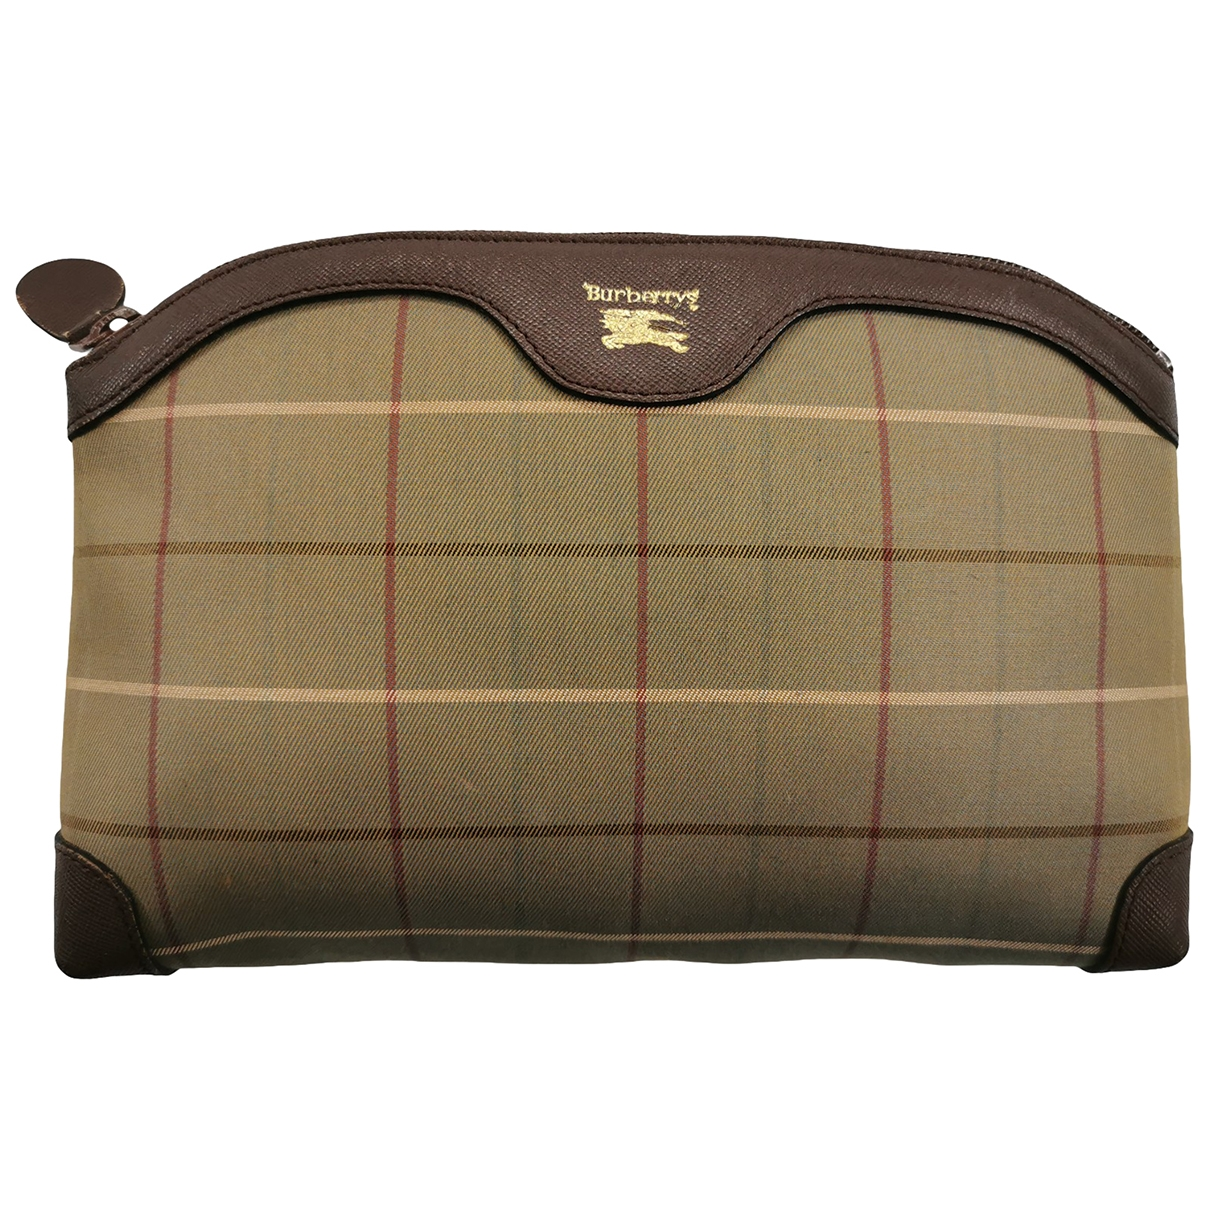 Burberry \N Beige Cloth Travel bag for Women \N